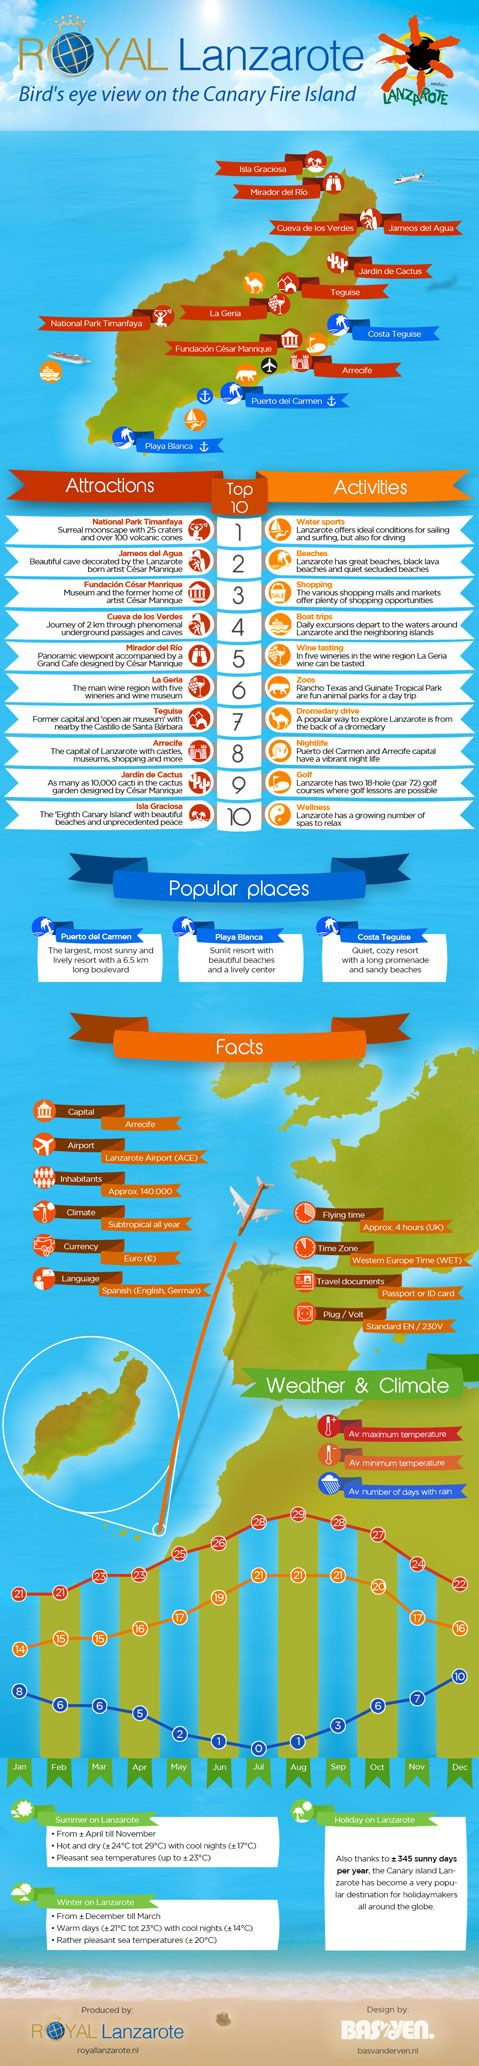 Overview of Isle of Lanzarote - The travel infographic provides a nice overview of the Isle of Lanzarote in the Canary Island. The Isle of Lanzarote is the fourth largest island in the Canary's. It is about 77 miles off the coast of Africa and boast 345 days of sunshine. The infographic provides a list of top activities and at